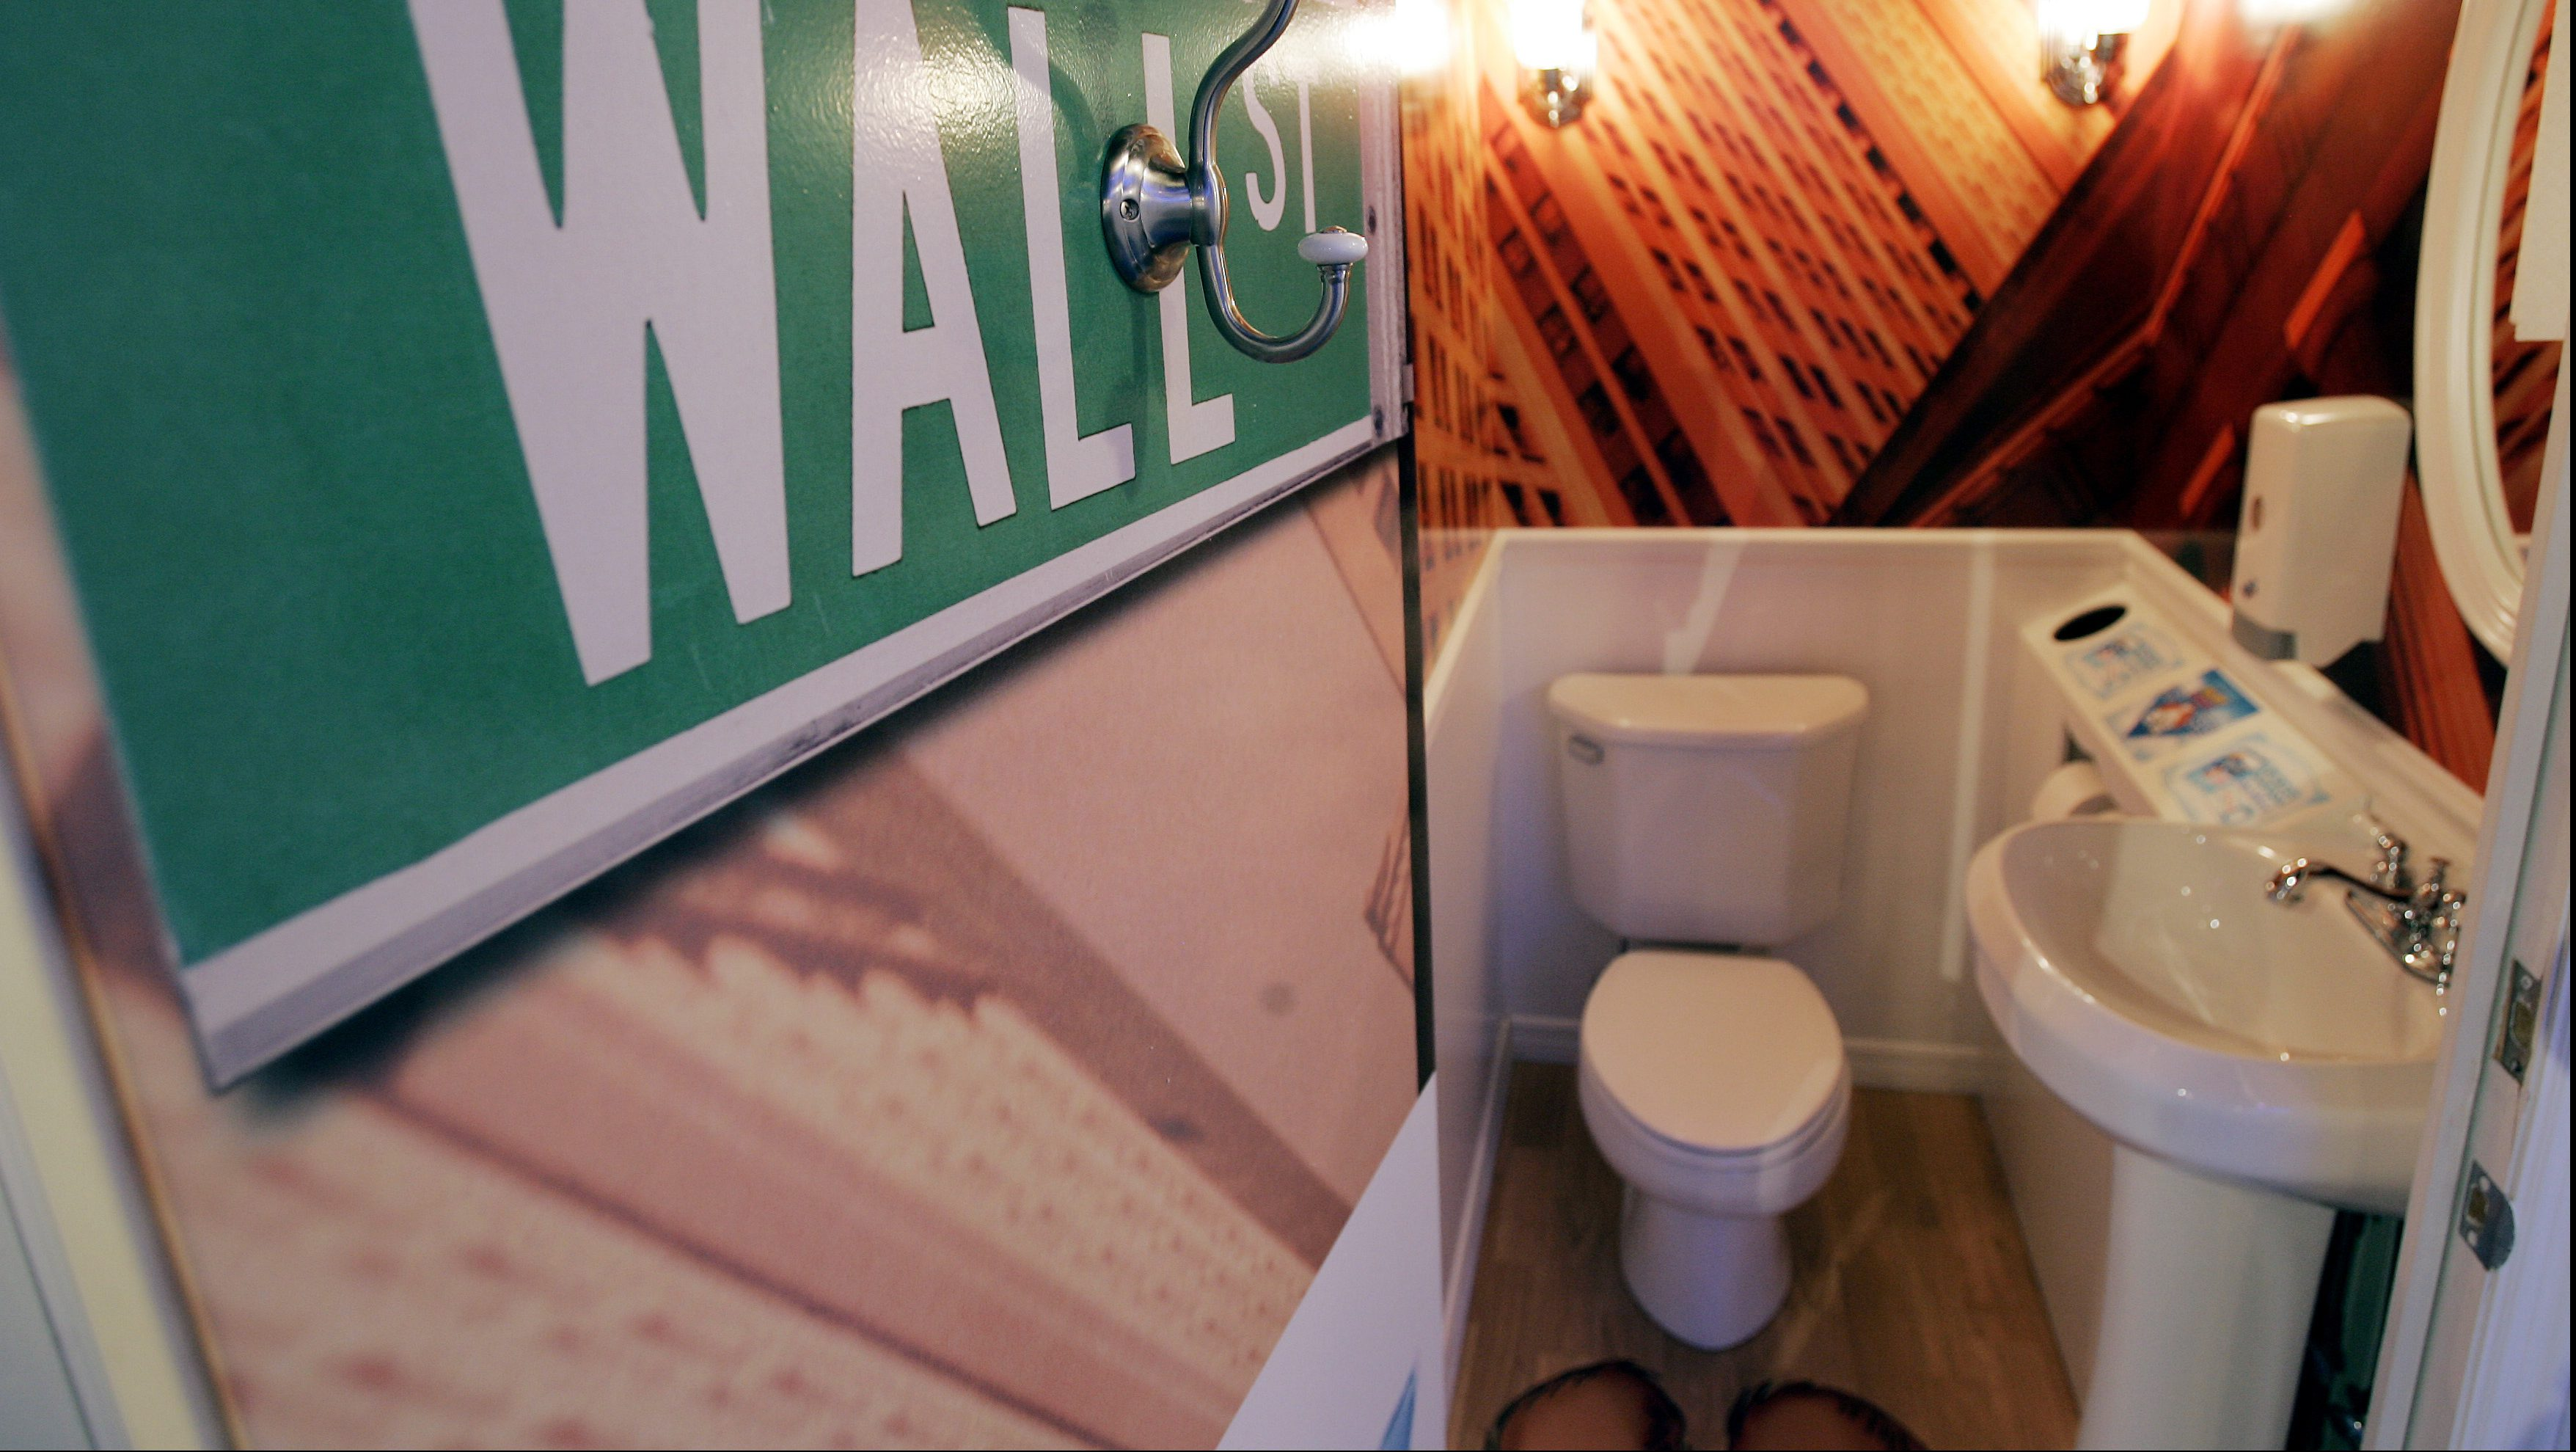 A Wall Street themed bathroom, one of 20 free public bathroom units that will be open for the holiday shopping season, is seen in New York's Times Square November 20, 2006. Toilet paper company Charmin built the public restrooms that will be available for free at a formerly vacant warehouse in Times Square. REUTERS/Mike Segar (UNITED STATES) - RTR1JJI8